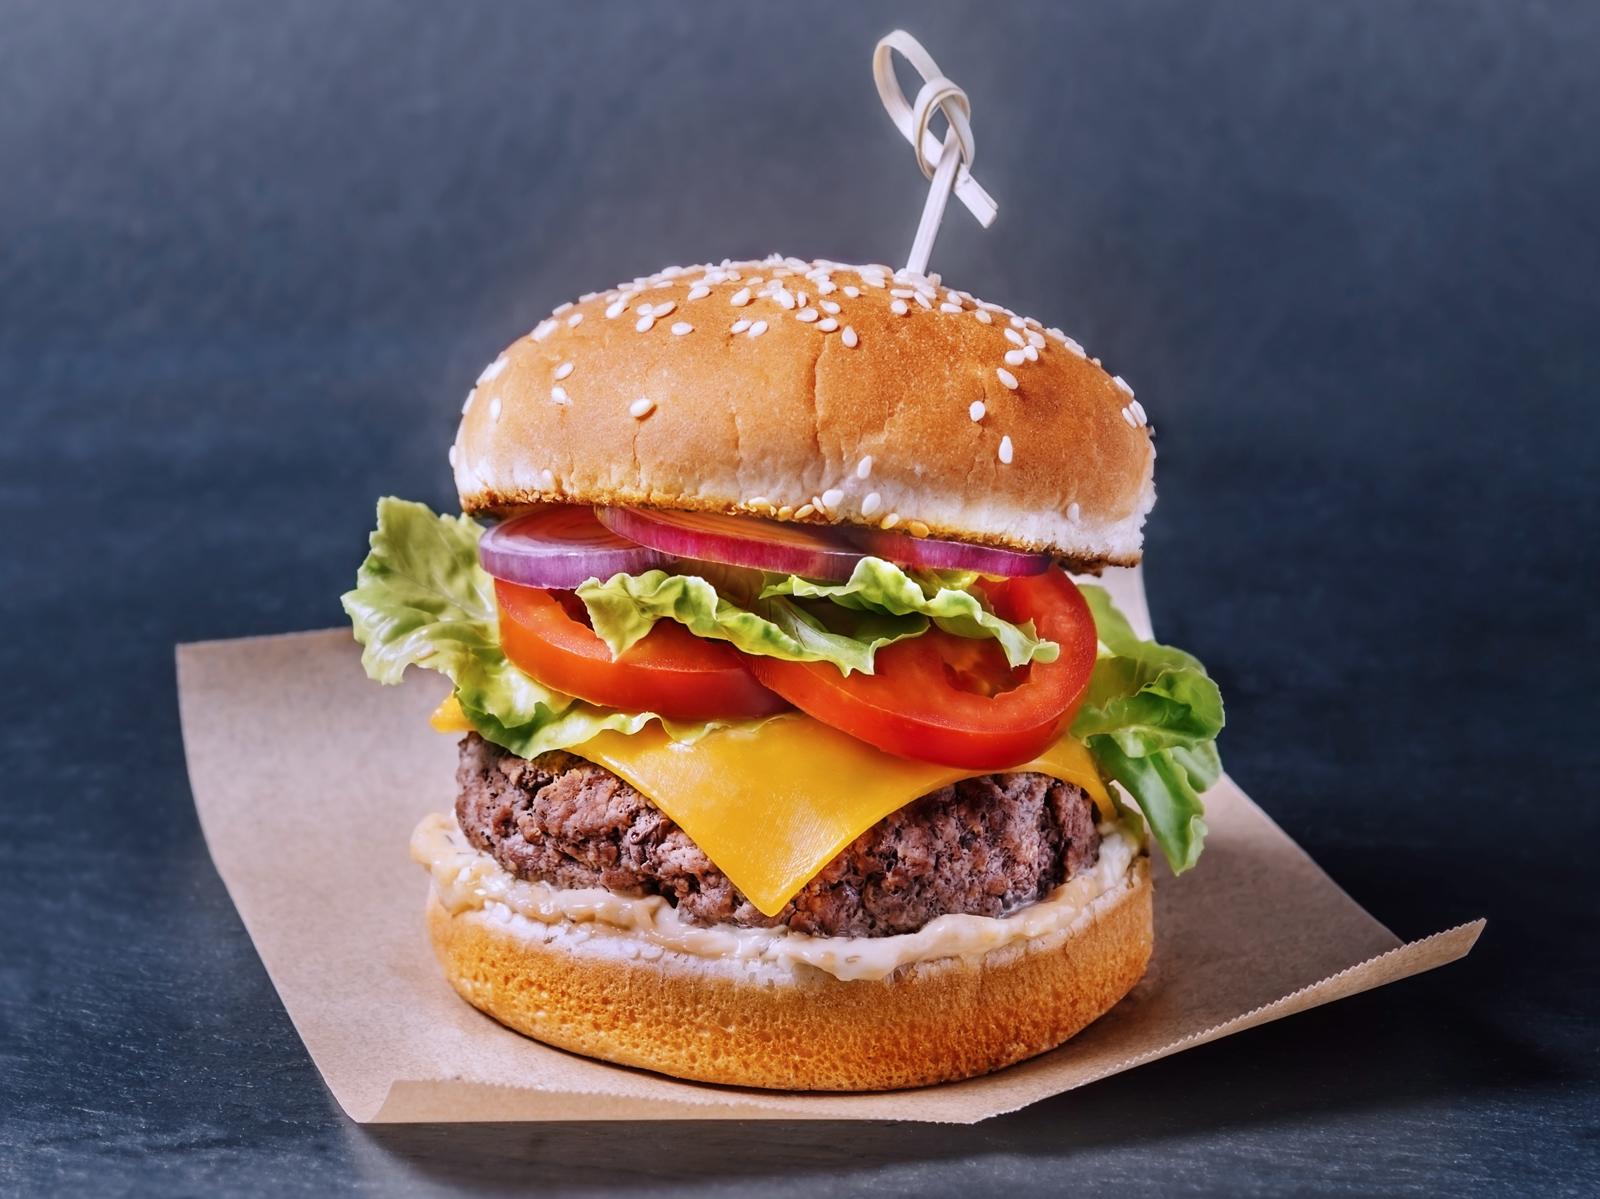 hamburger-cost-each-state-FT-BLOG0719.jpg